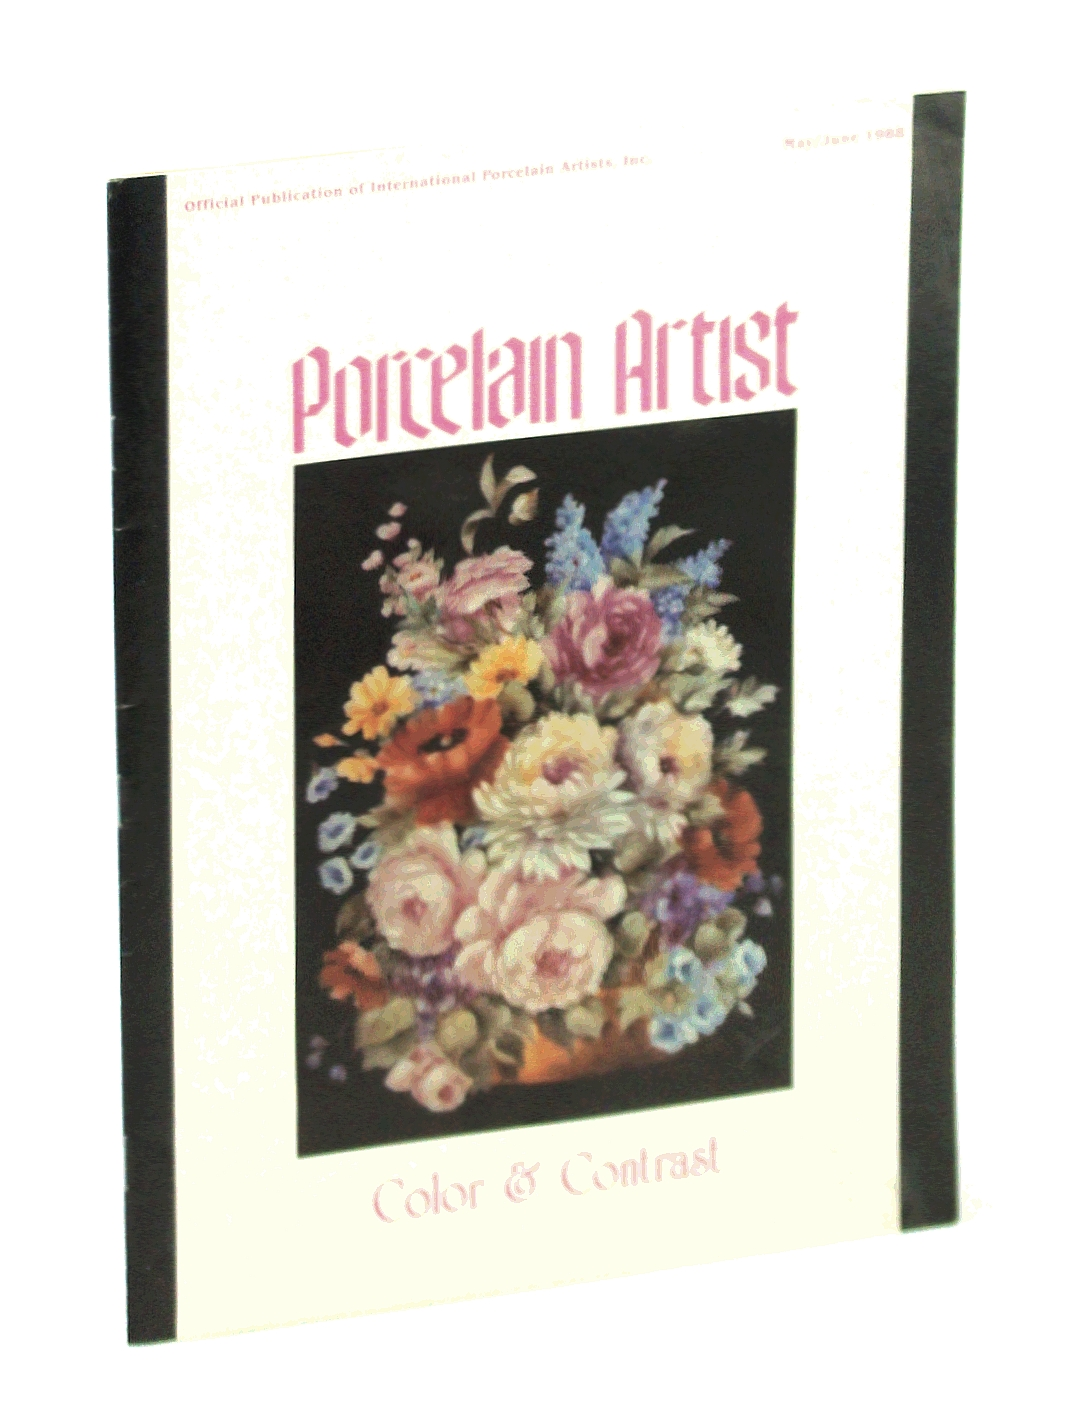 Image for Porcelain Artist [Magazine] May / June 1988: Color & Contrast